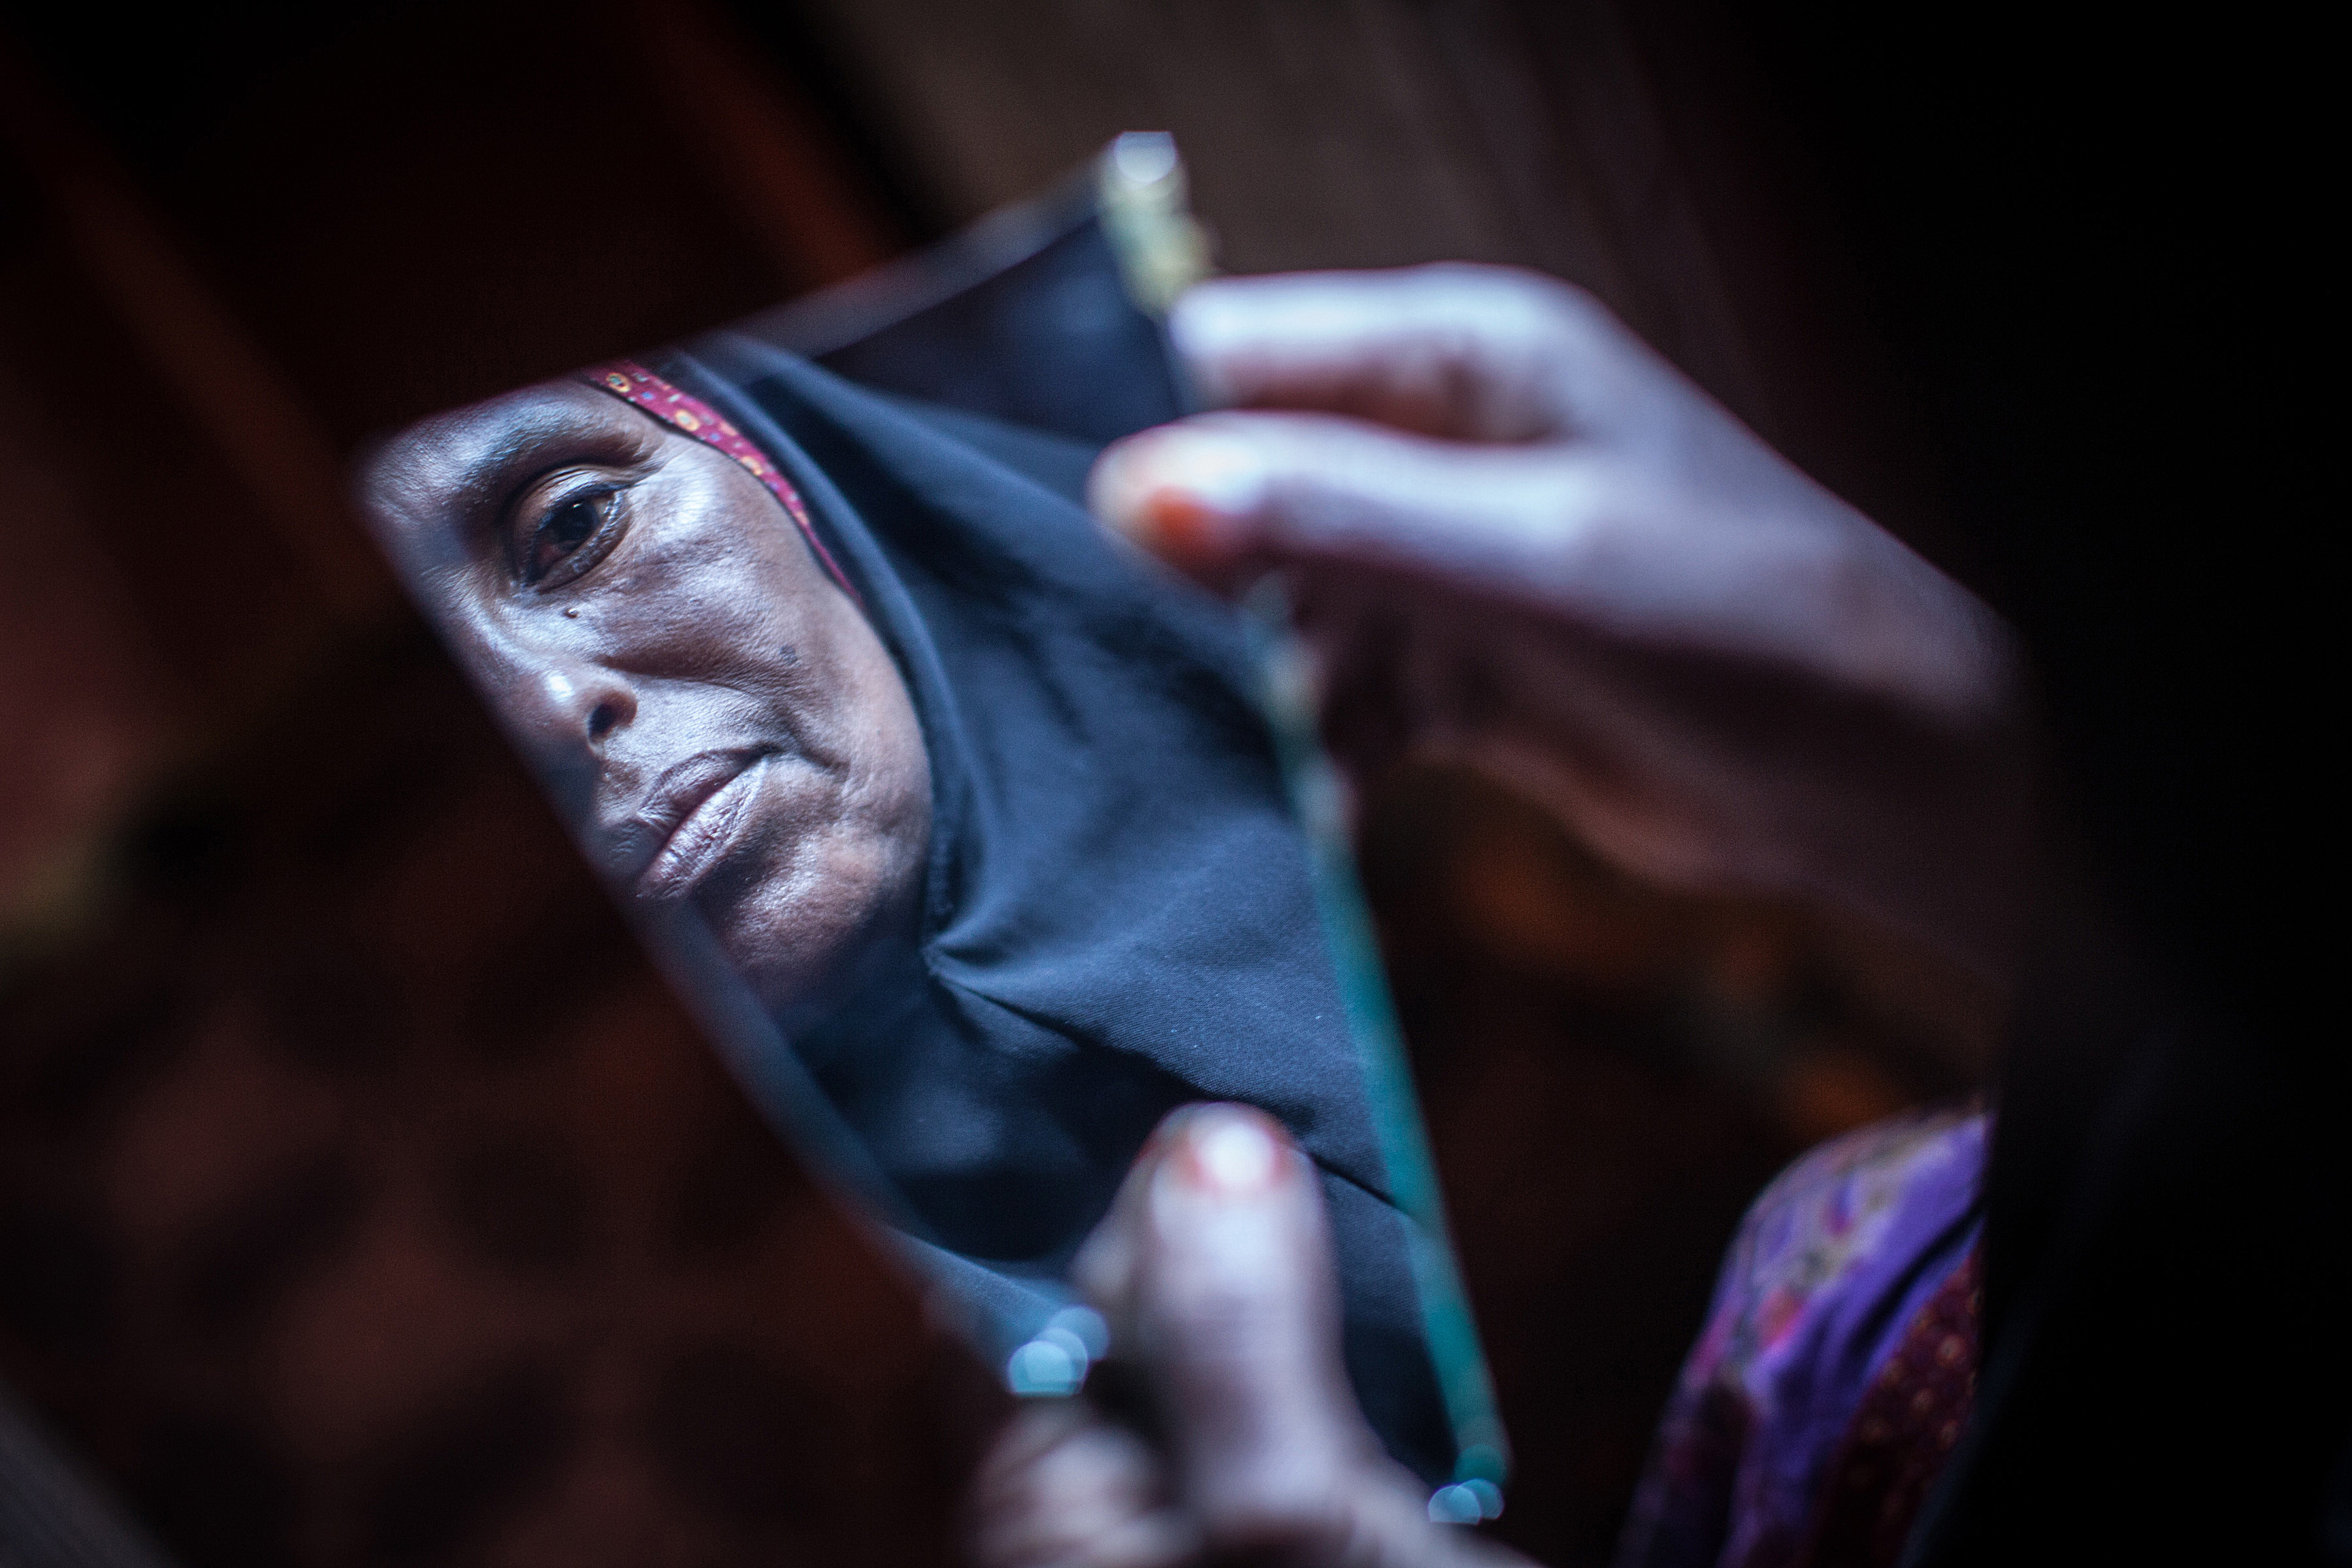 Somalia: A 'cutter' looks into a piece of a mirror. (Photo: Nichole Sobecki / AFP / Getty Images)